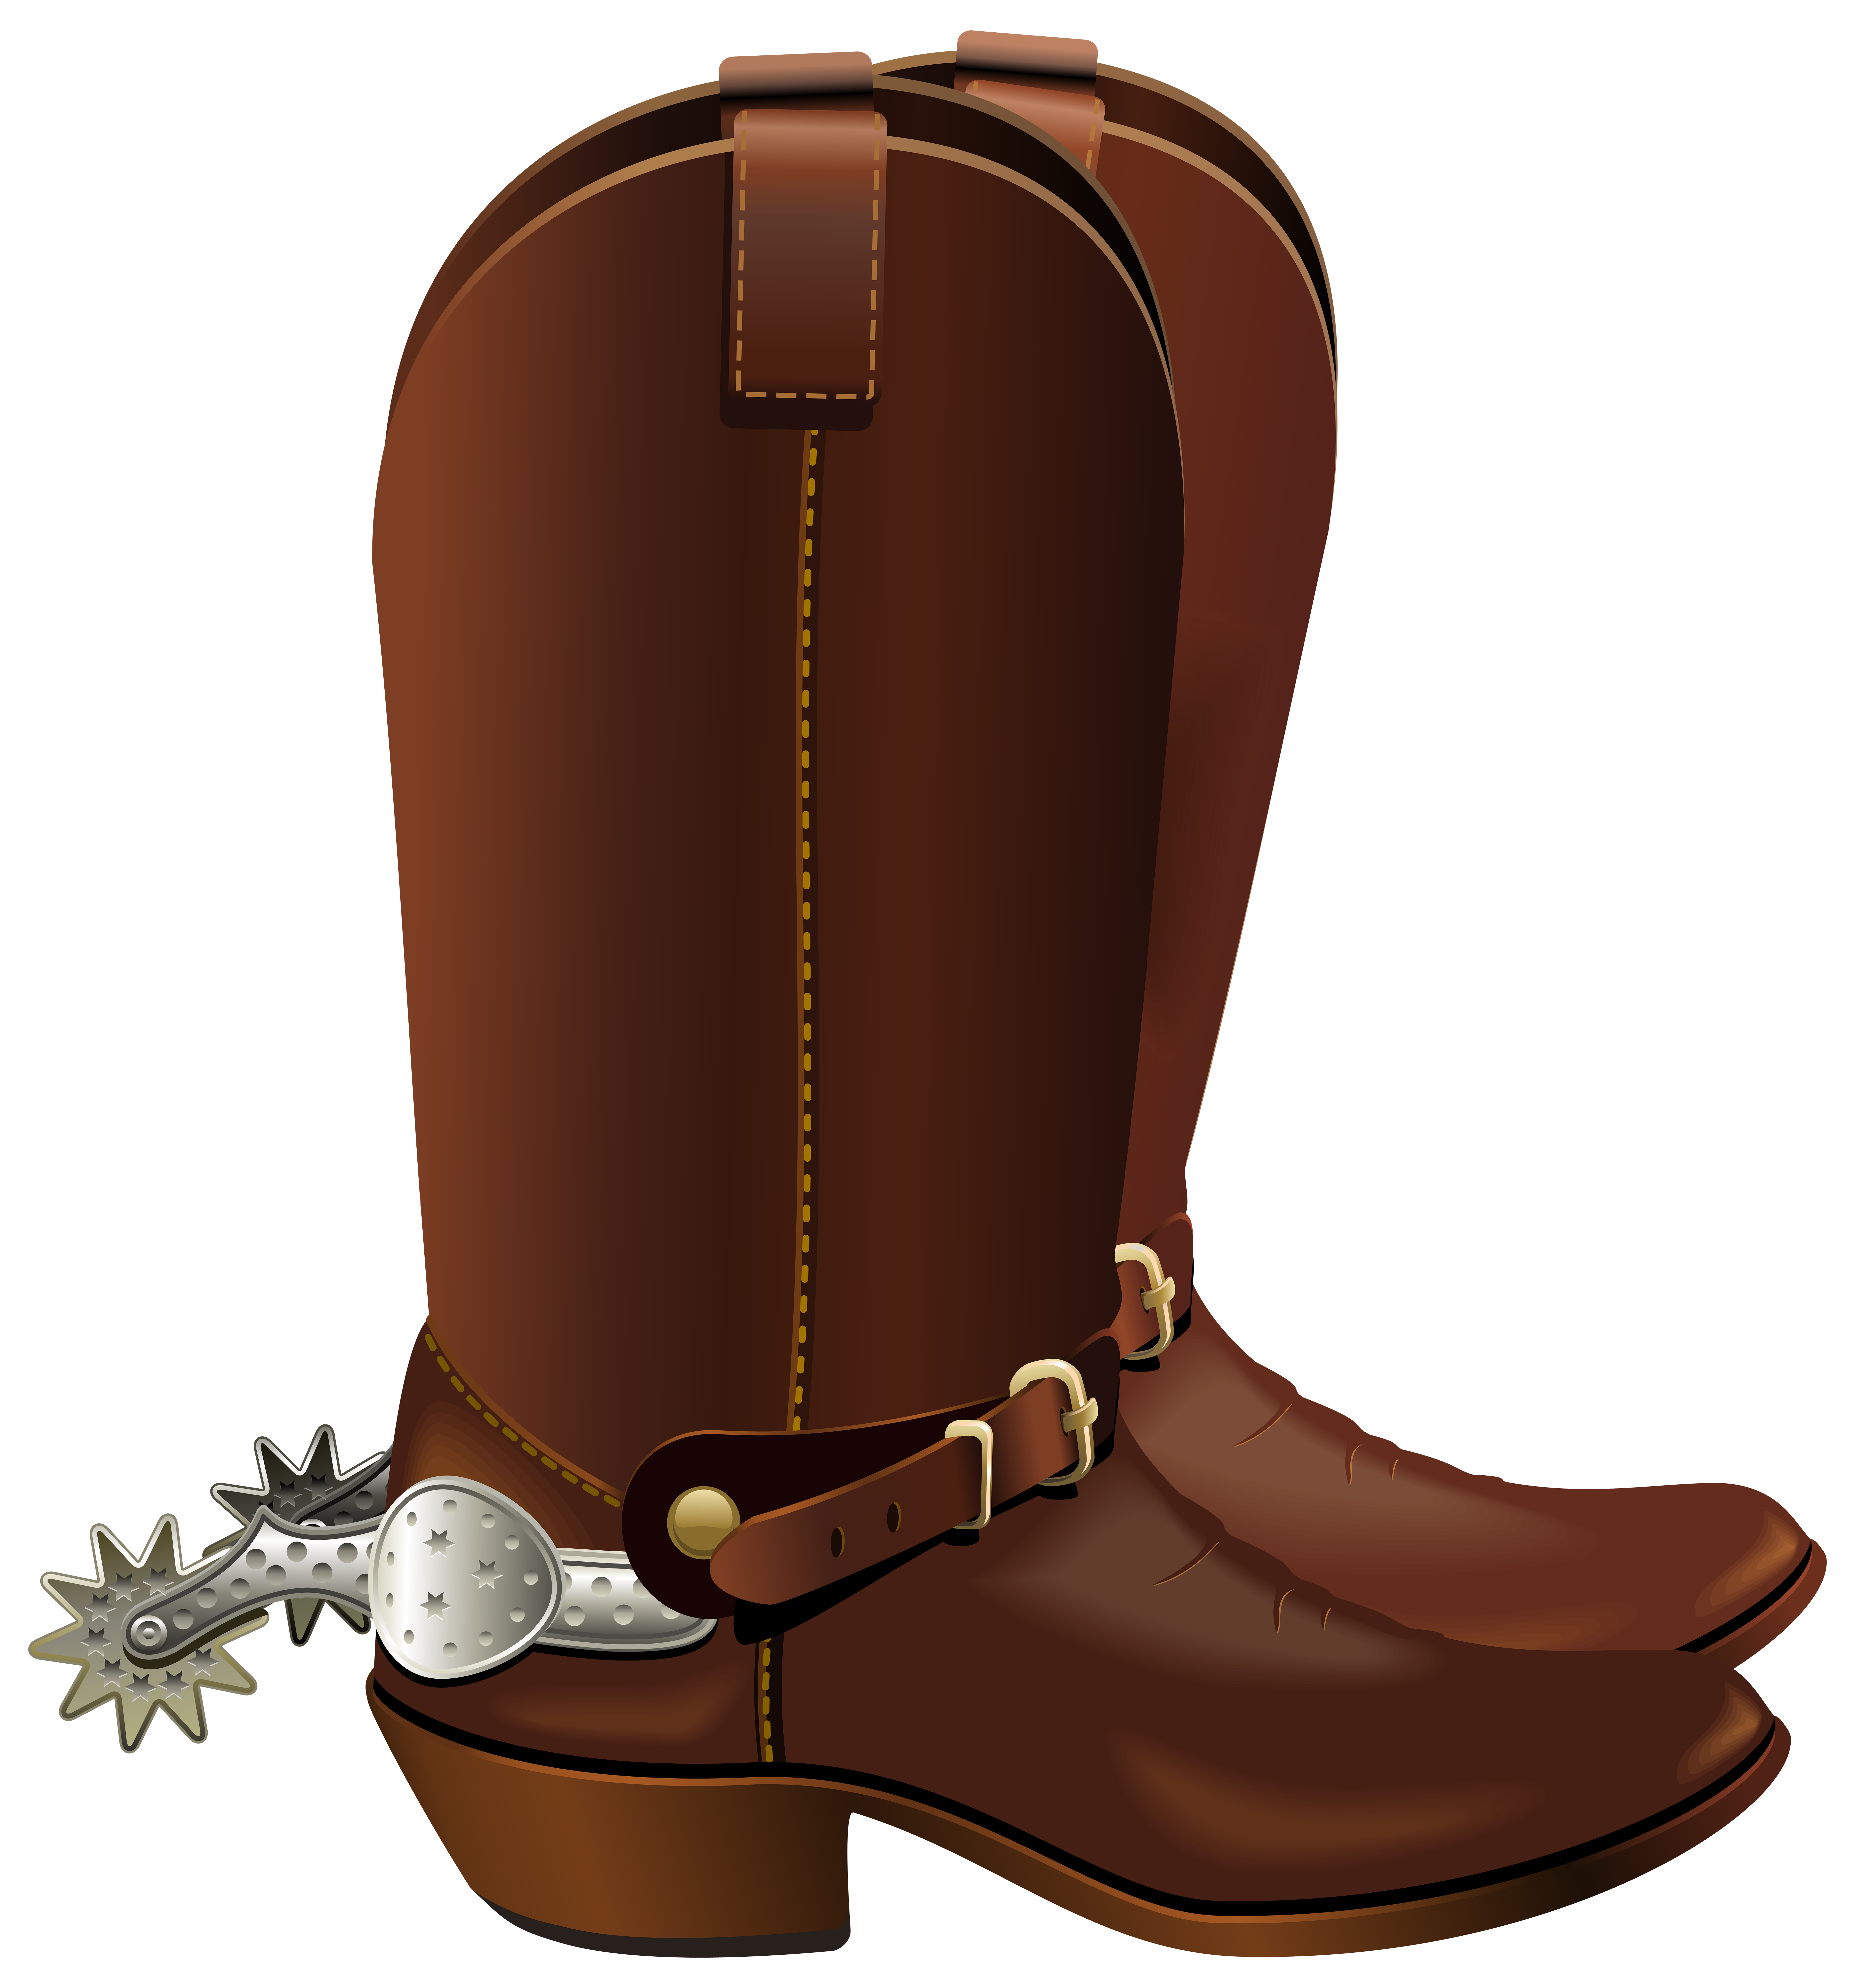 Western Boot Cliparts #2649357 - Cowboy Boots With Spurs PNG